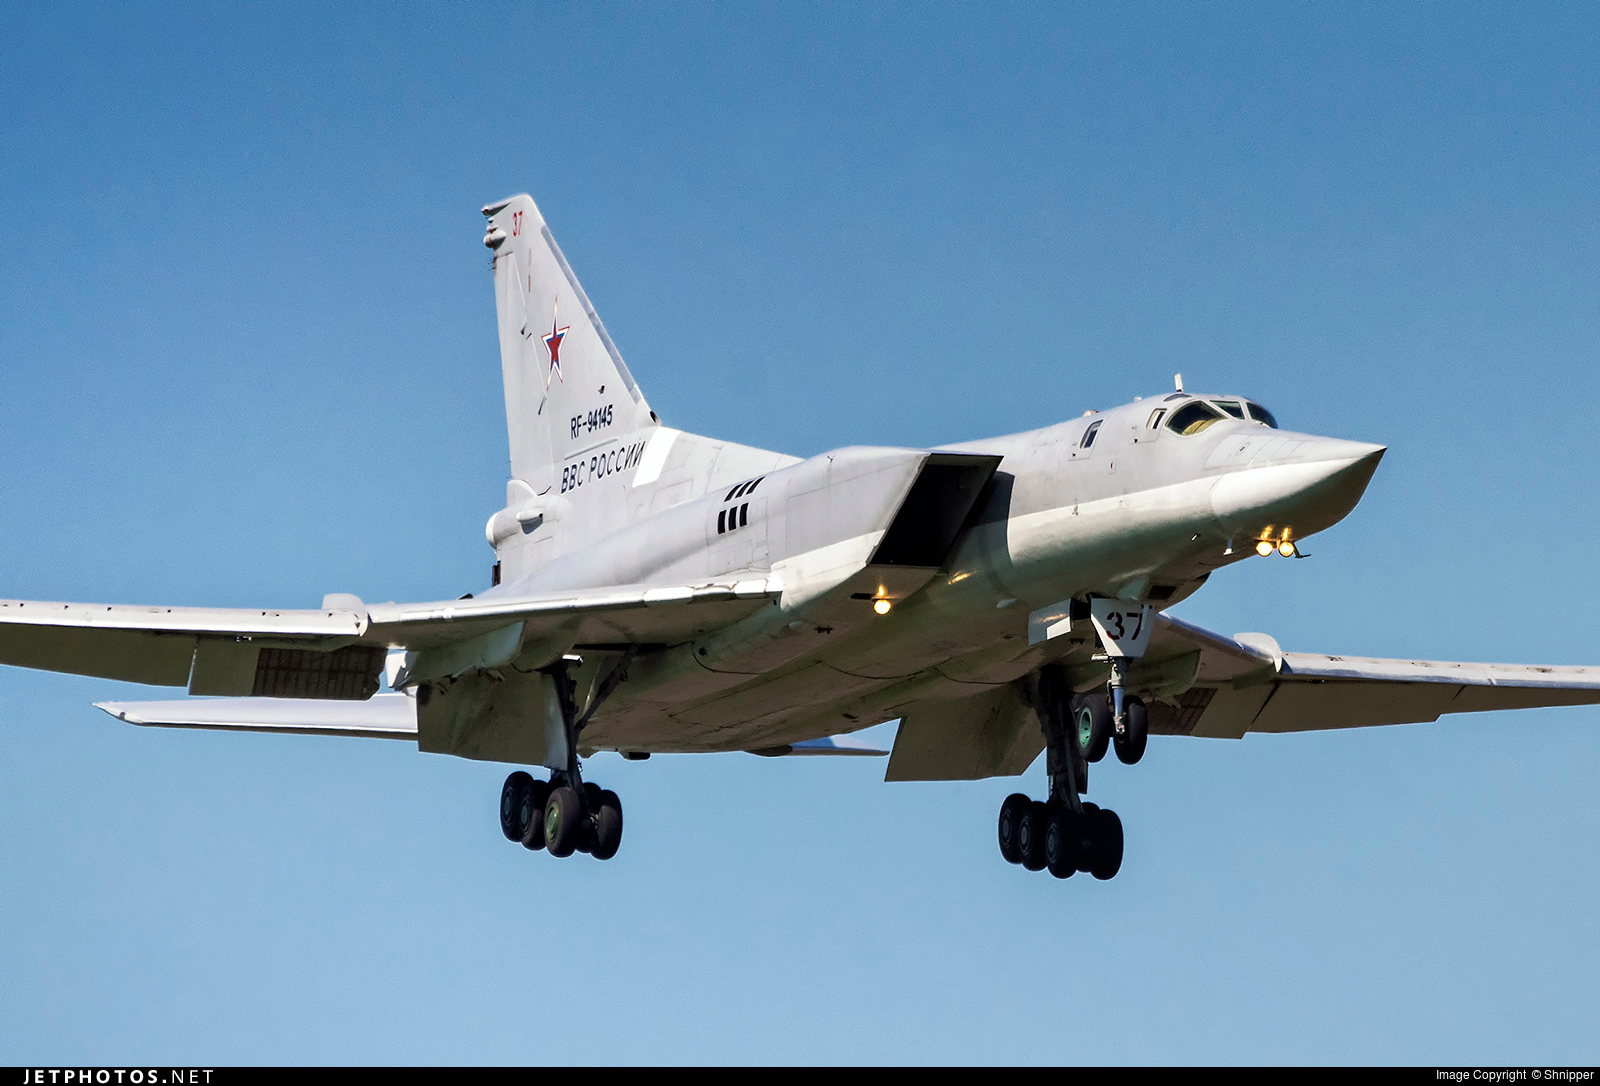 The Tupolev Tu 22m Is A Long Range Strategic And Maritime Strike Er Of